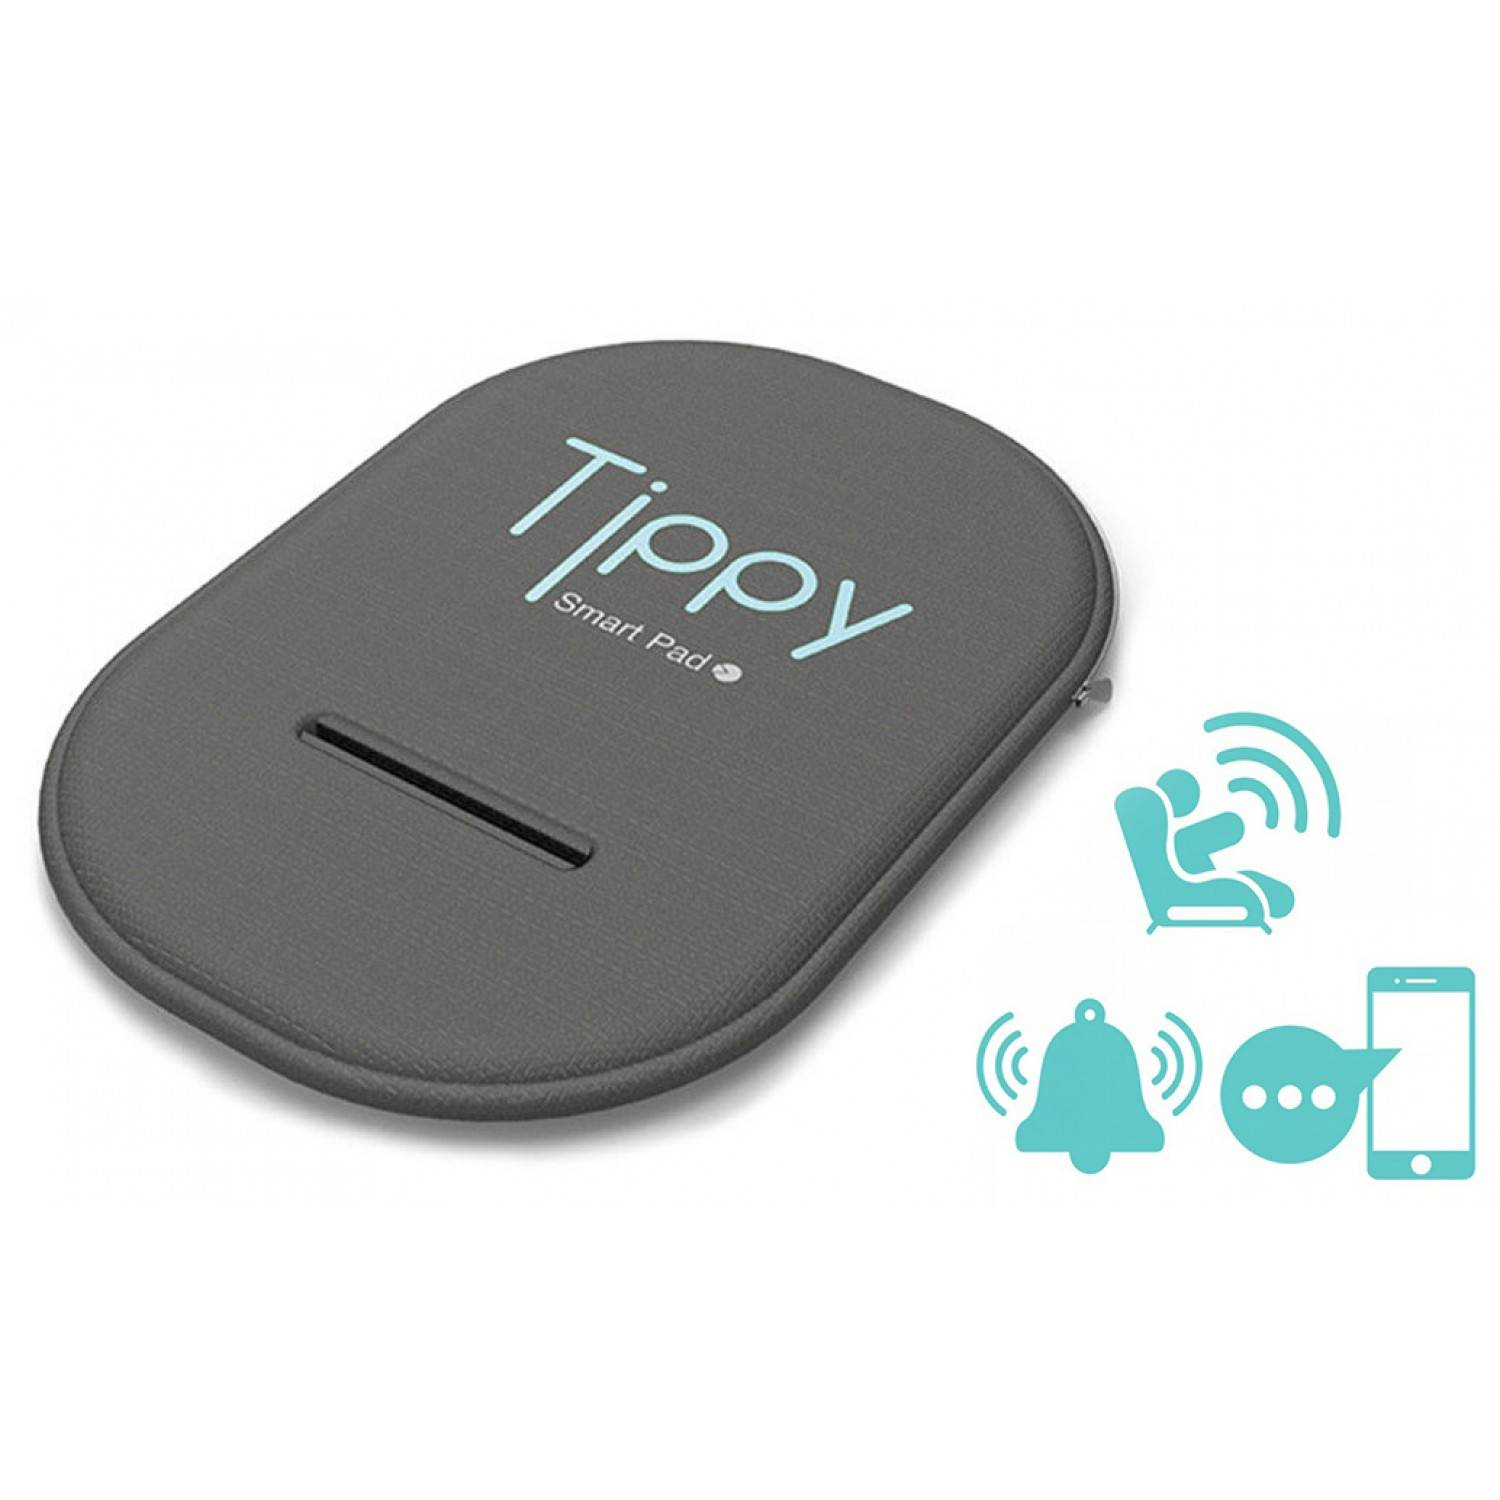 Cam Dispositif anti-abandon Tippy Smart Pad Digicom pour siège auto